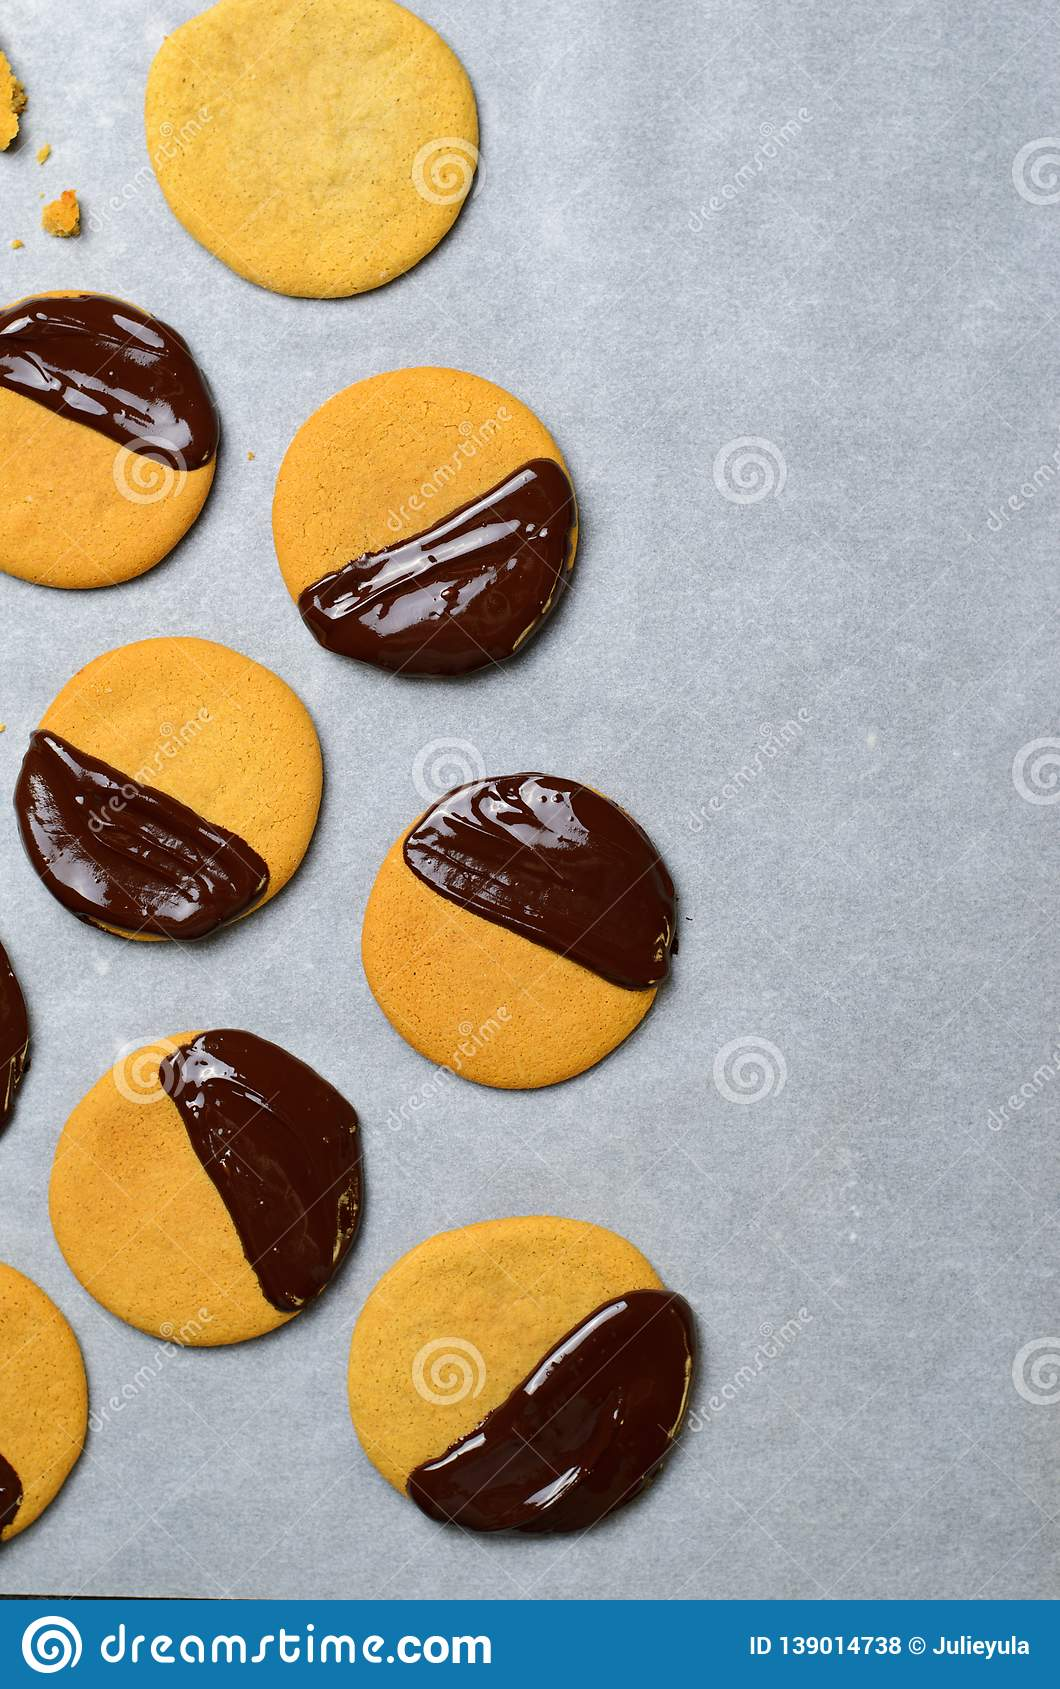 Cookies with Chocolate Glaze, Freshly Baked Cookies, Top View